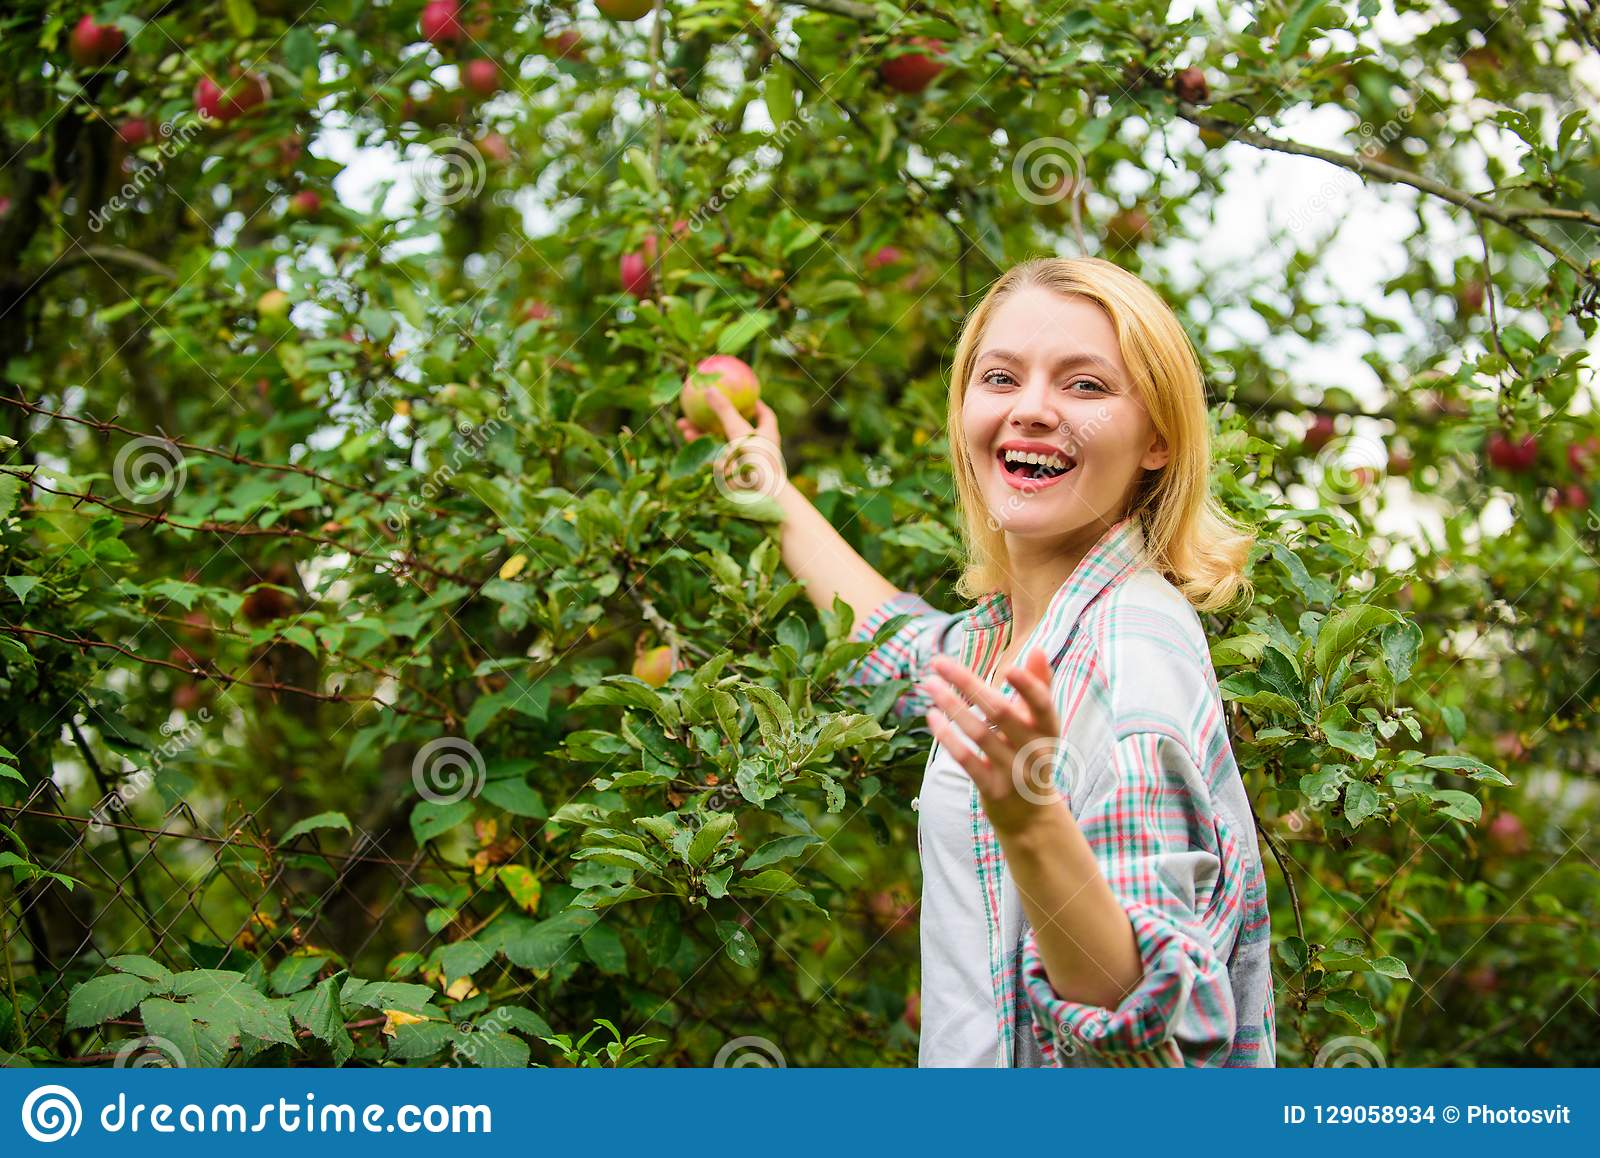 Farm produce organic natural product. Girl rustic style gather apples harvest garden autumn day. Farmer picking ripe